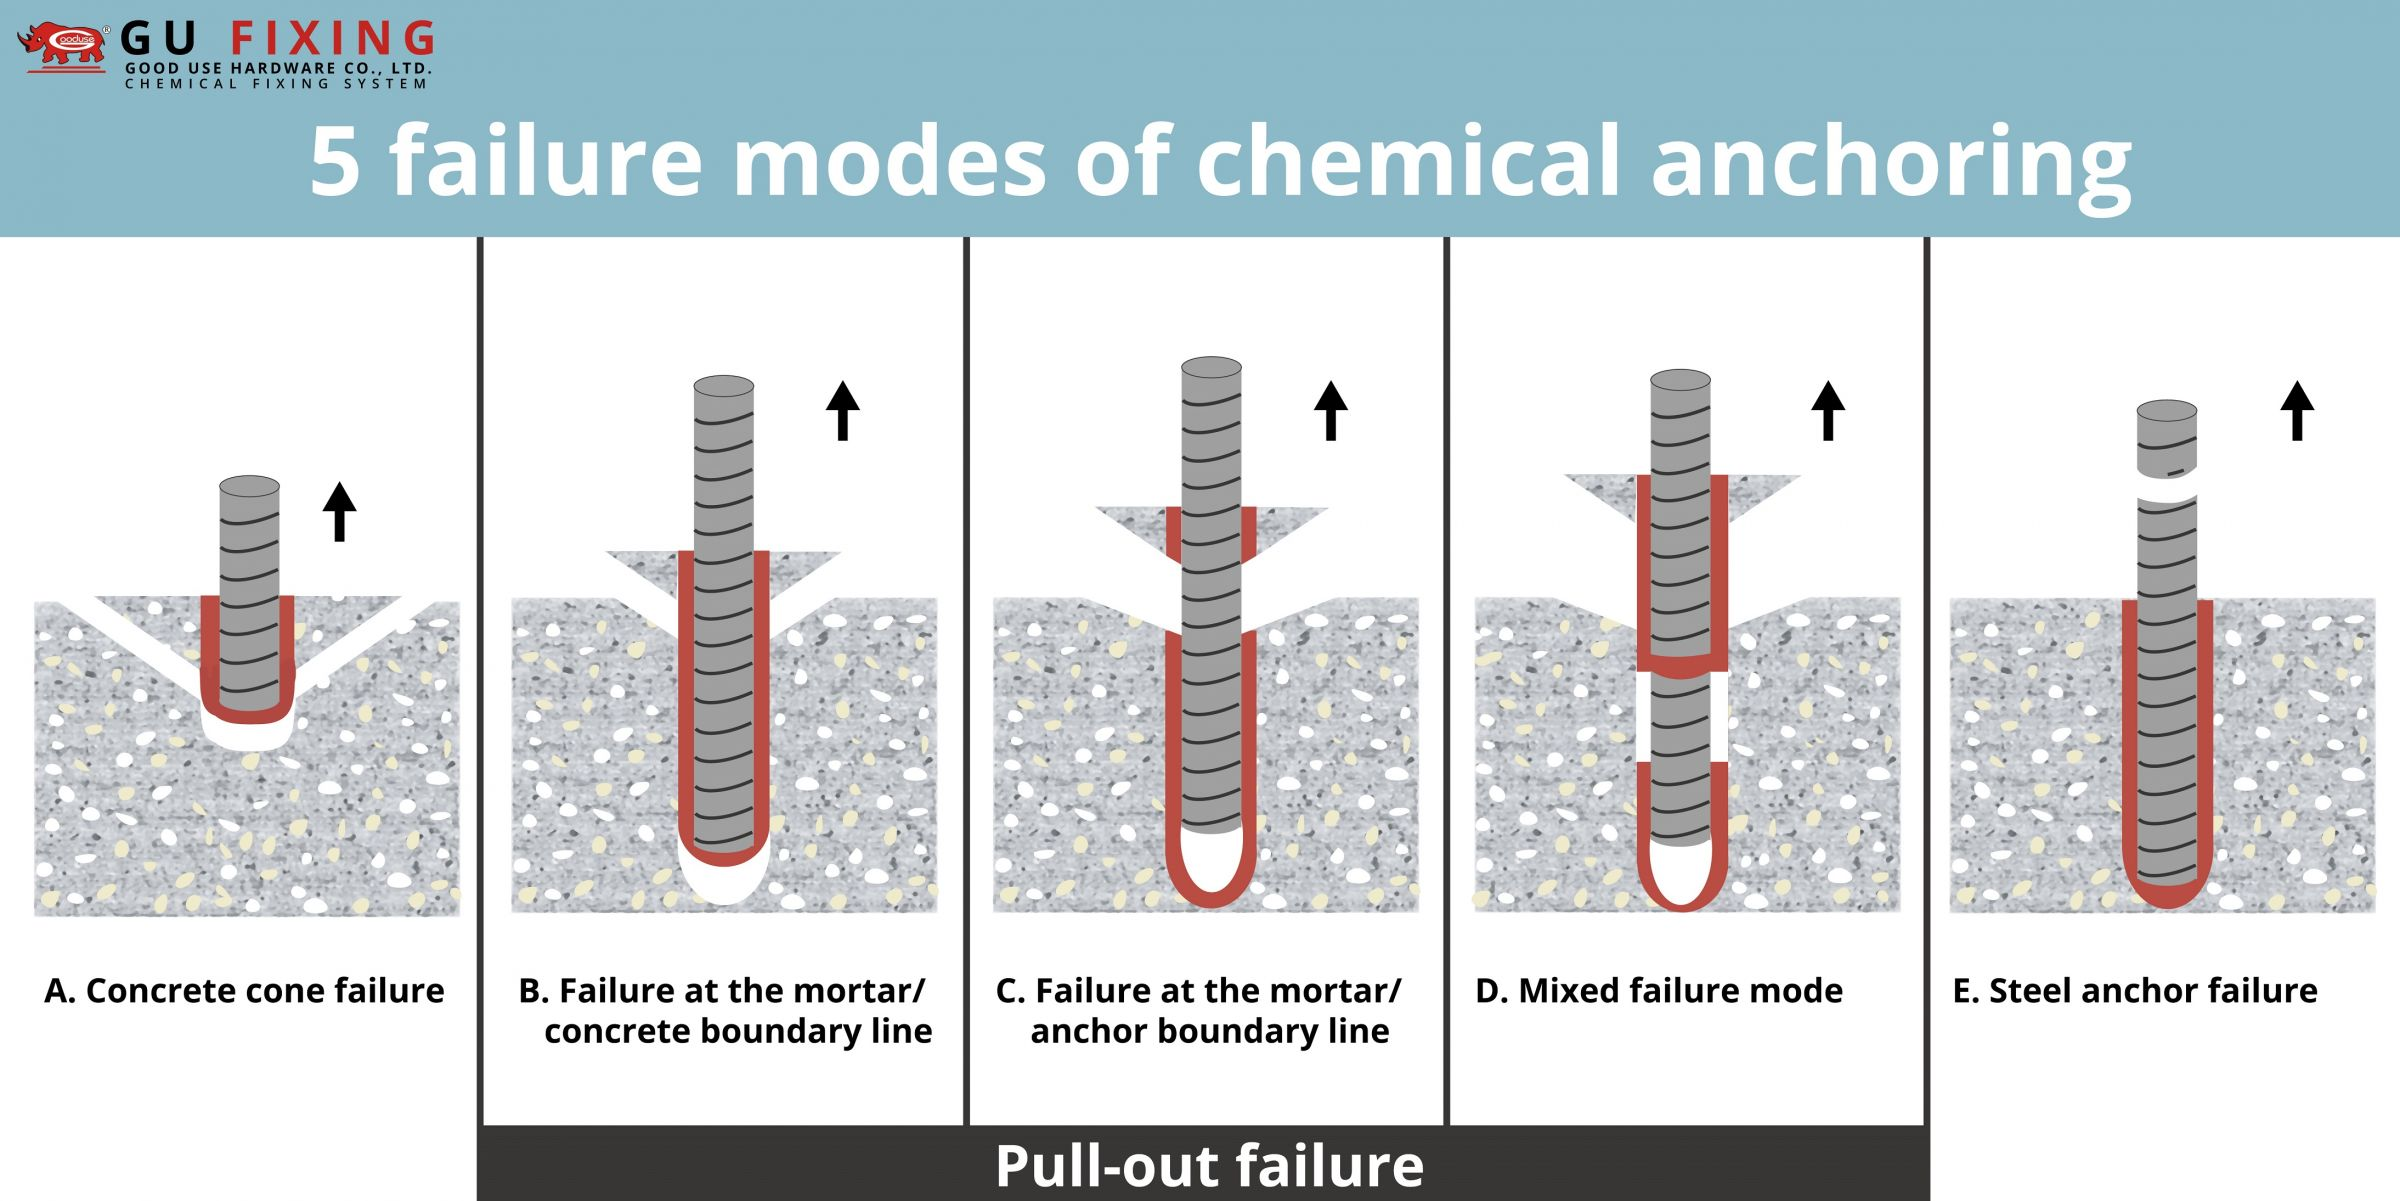 5 failure modes of chemical anchoring